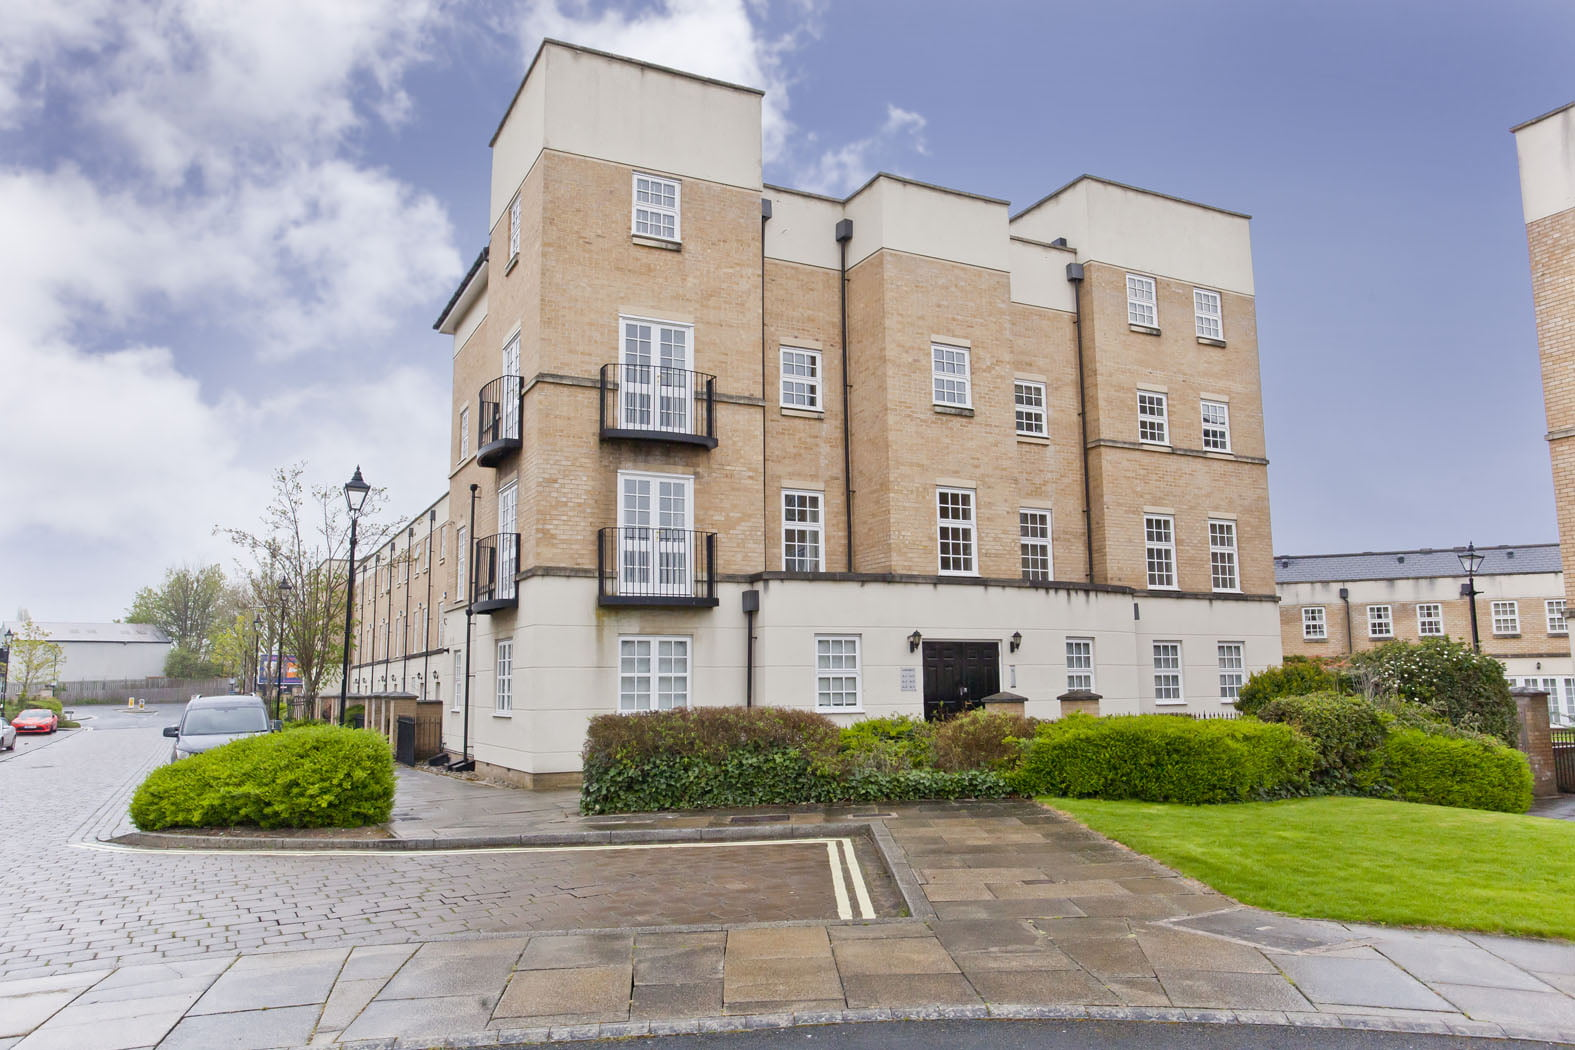 Phoenix Boulevard, York, To Let By Anderton McClements